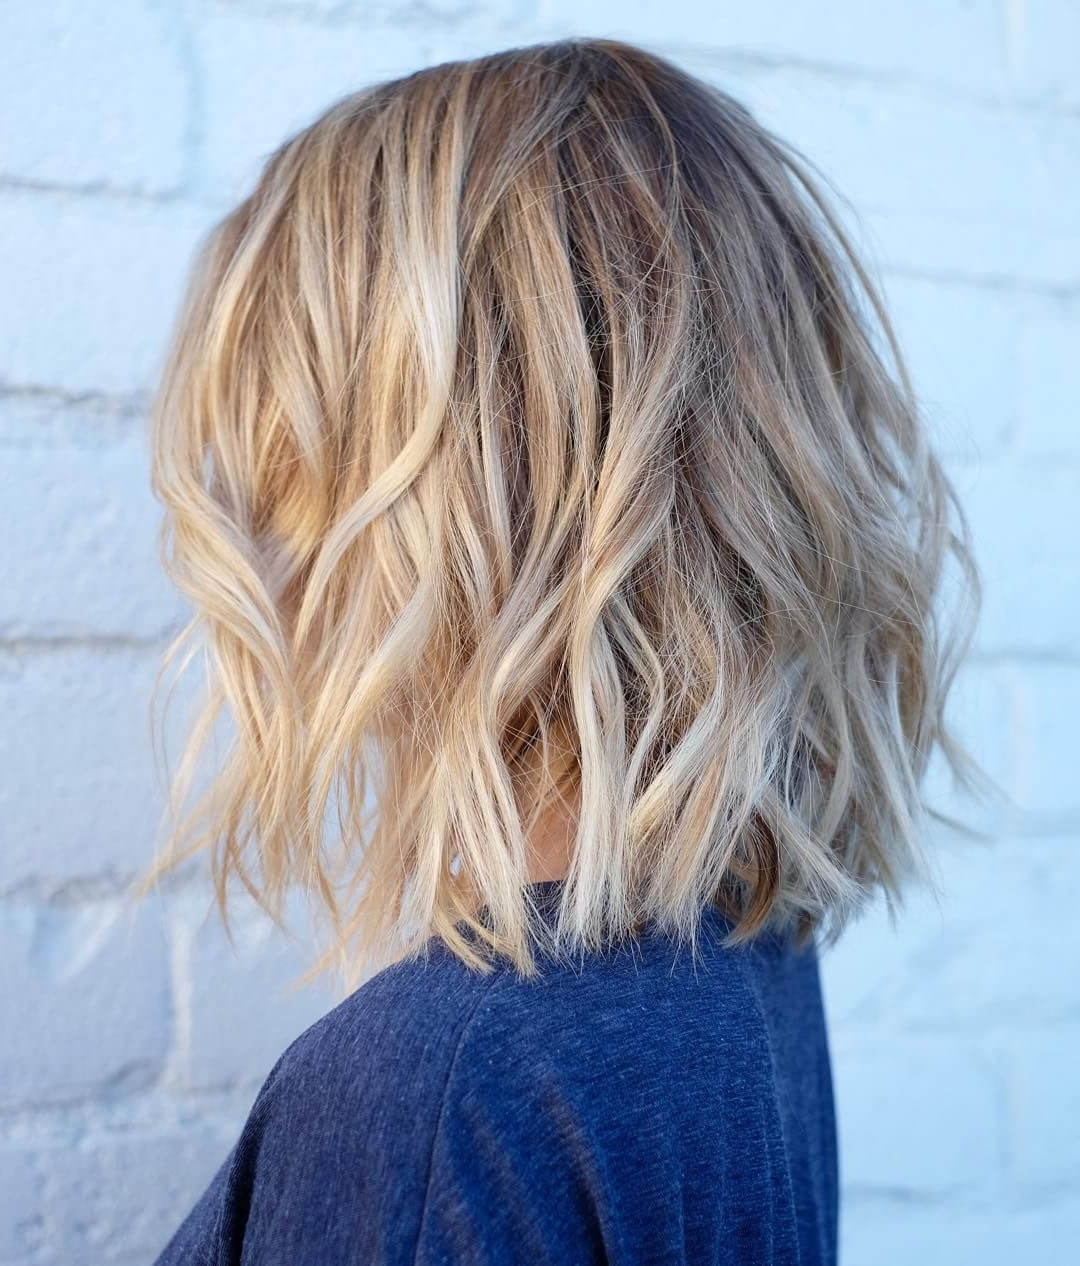 50 Fresh Short Blonde Hair Ideas To Update Your Style In 2018 Regarding Famous Rooty Long Bob Blonde Hairstyles (View 5 of 20)